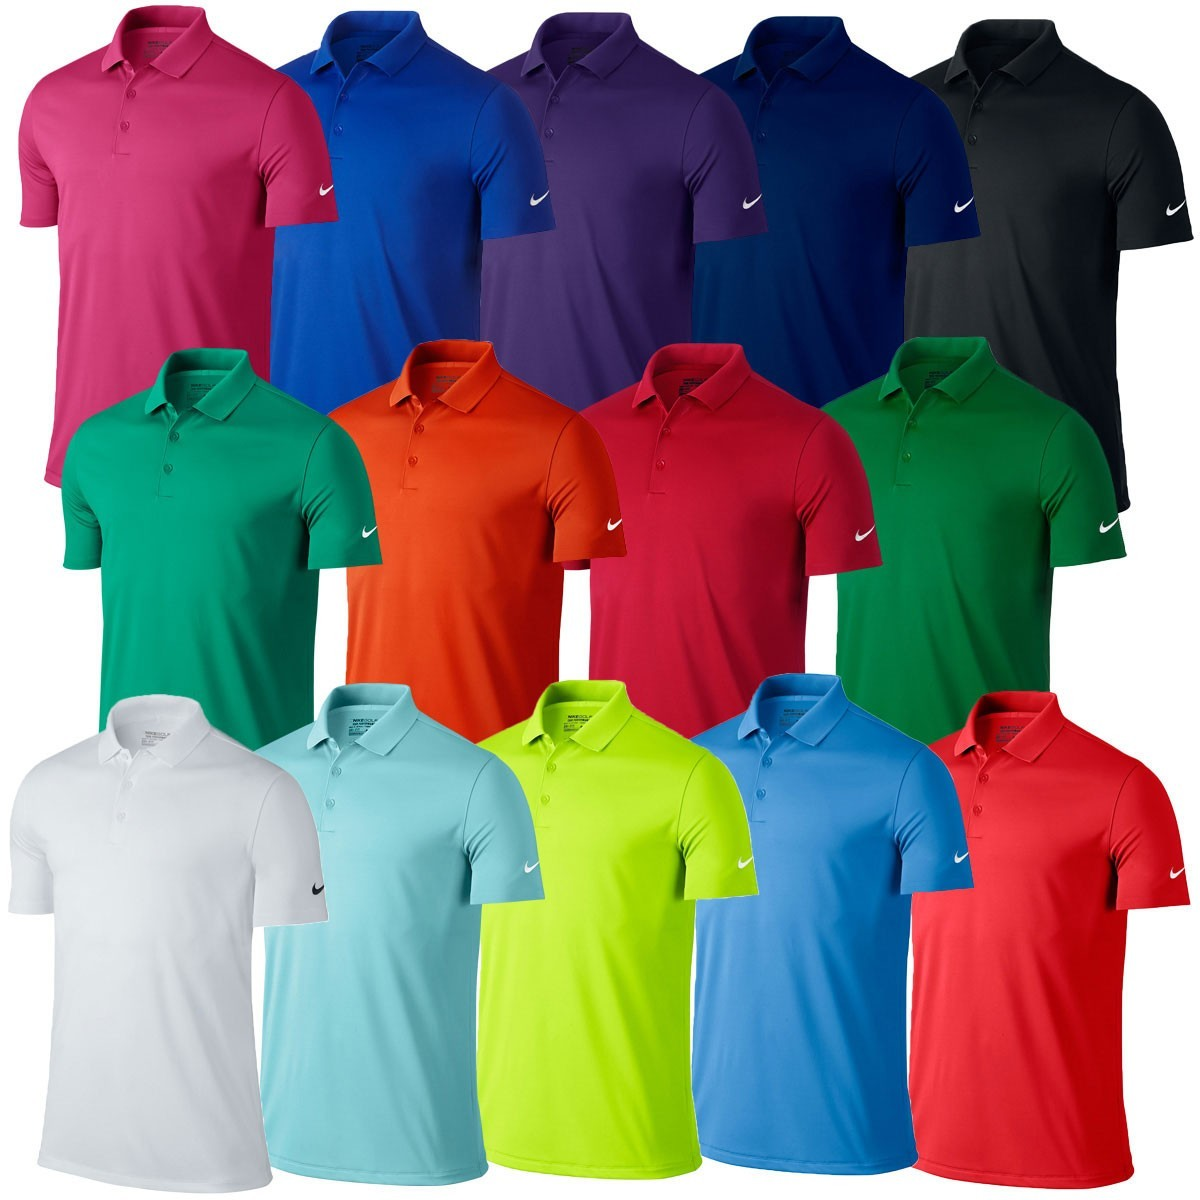 Nike golf mens victory solid dri fit polo shirt golf for Nike dri fit victory golf shirts